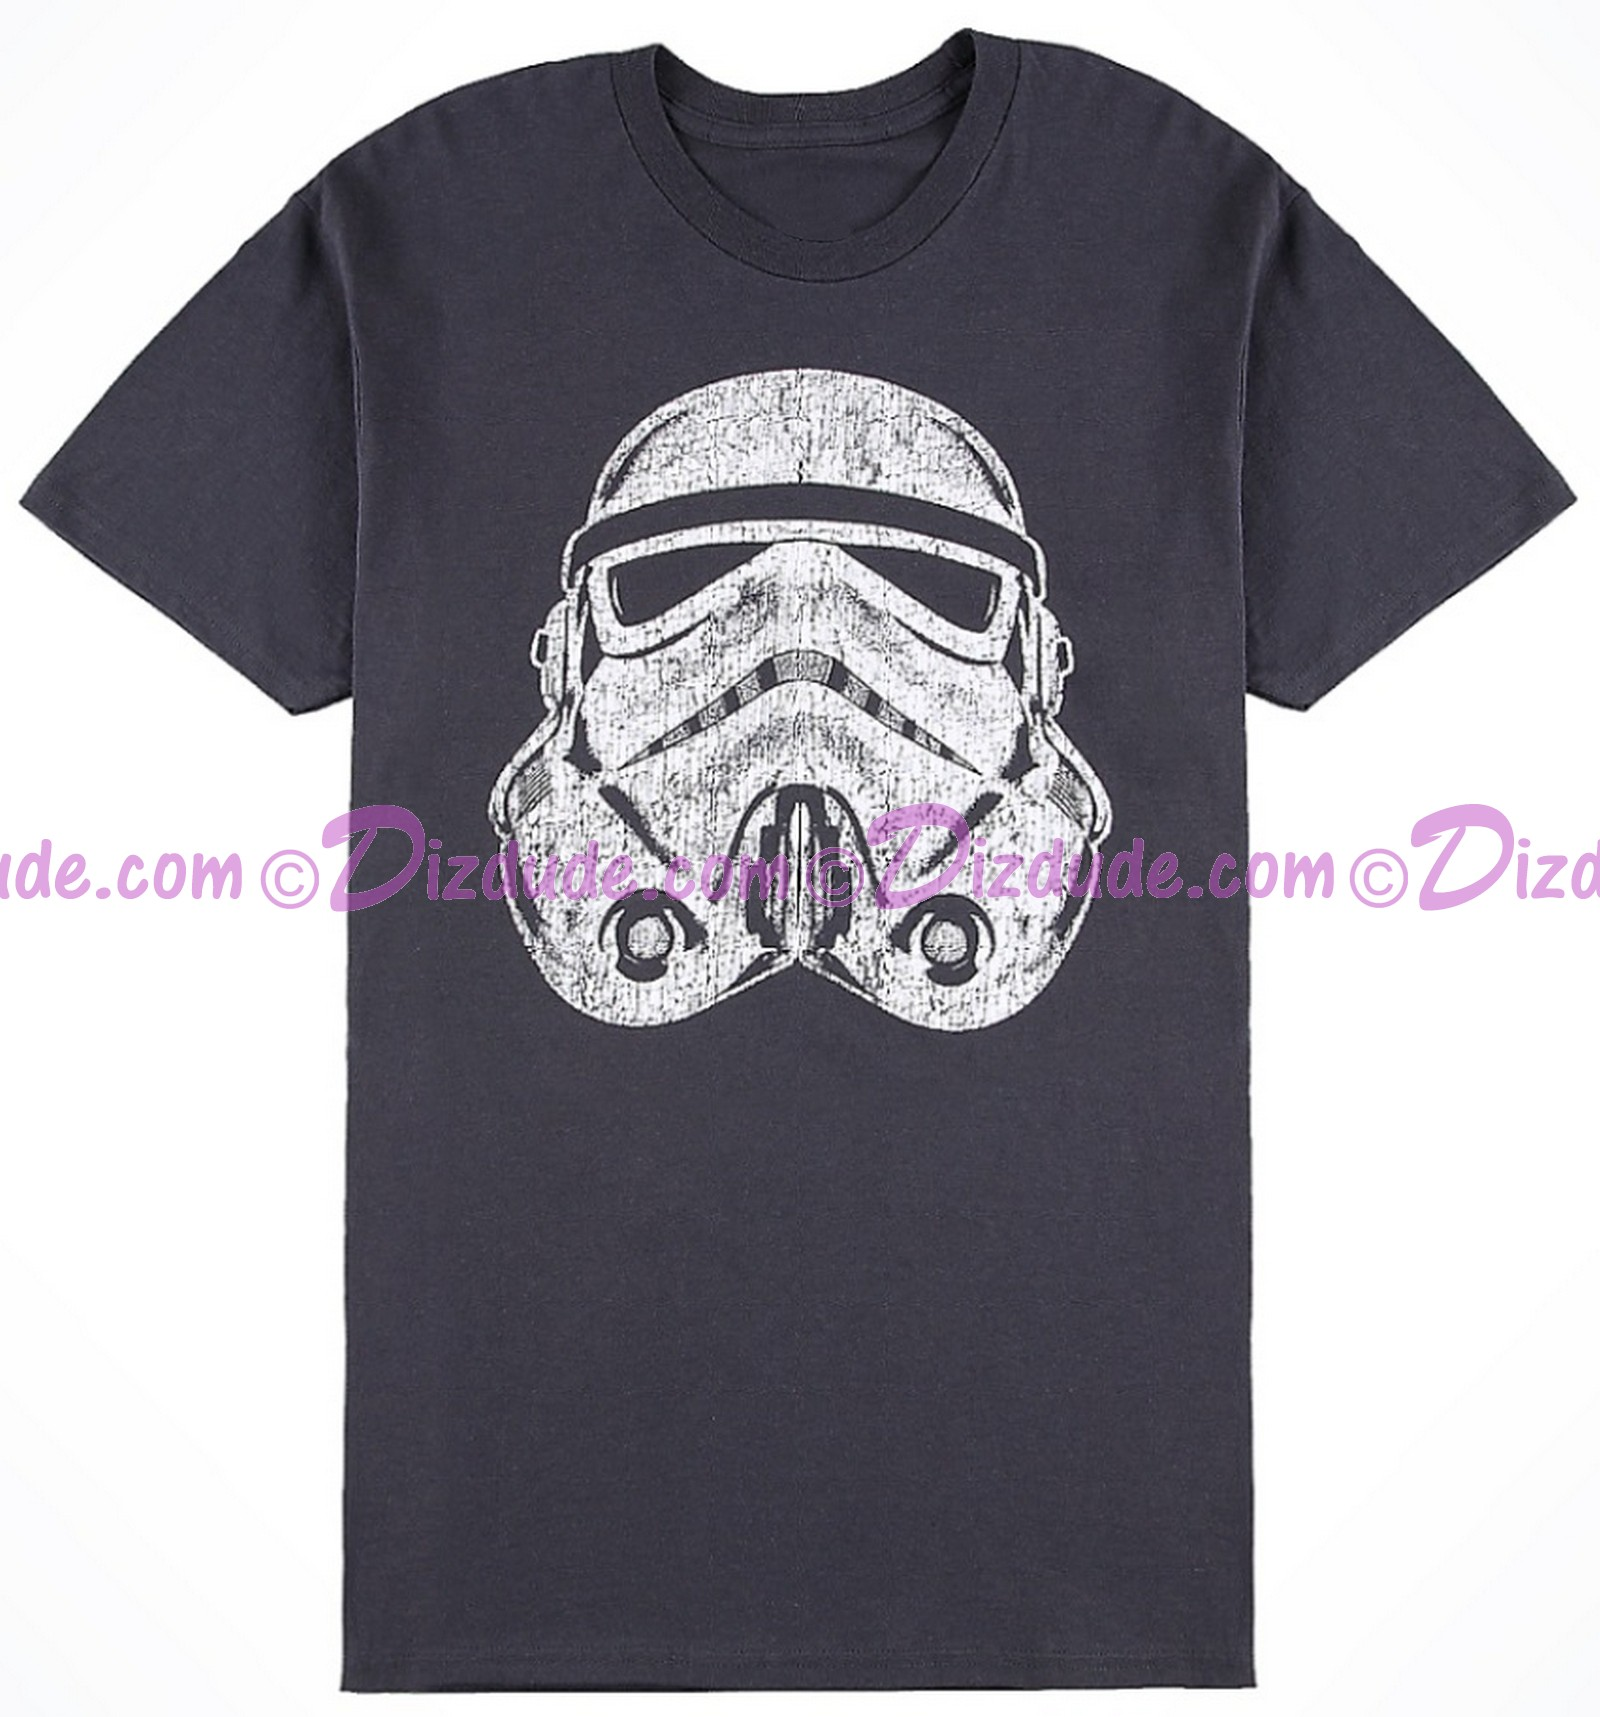 Vintage Star Wars Distressed Stormtrooper Adult T-Shirt (Tshirt, T shirt or Tee) © Dizdude.com